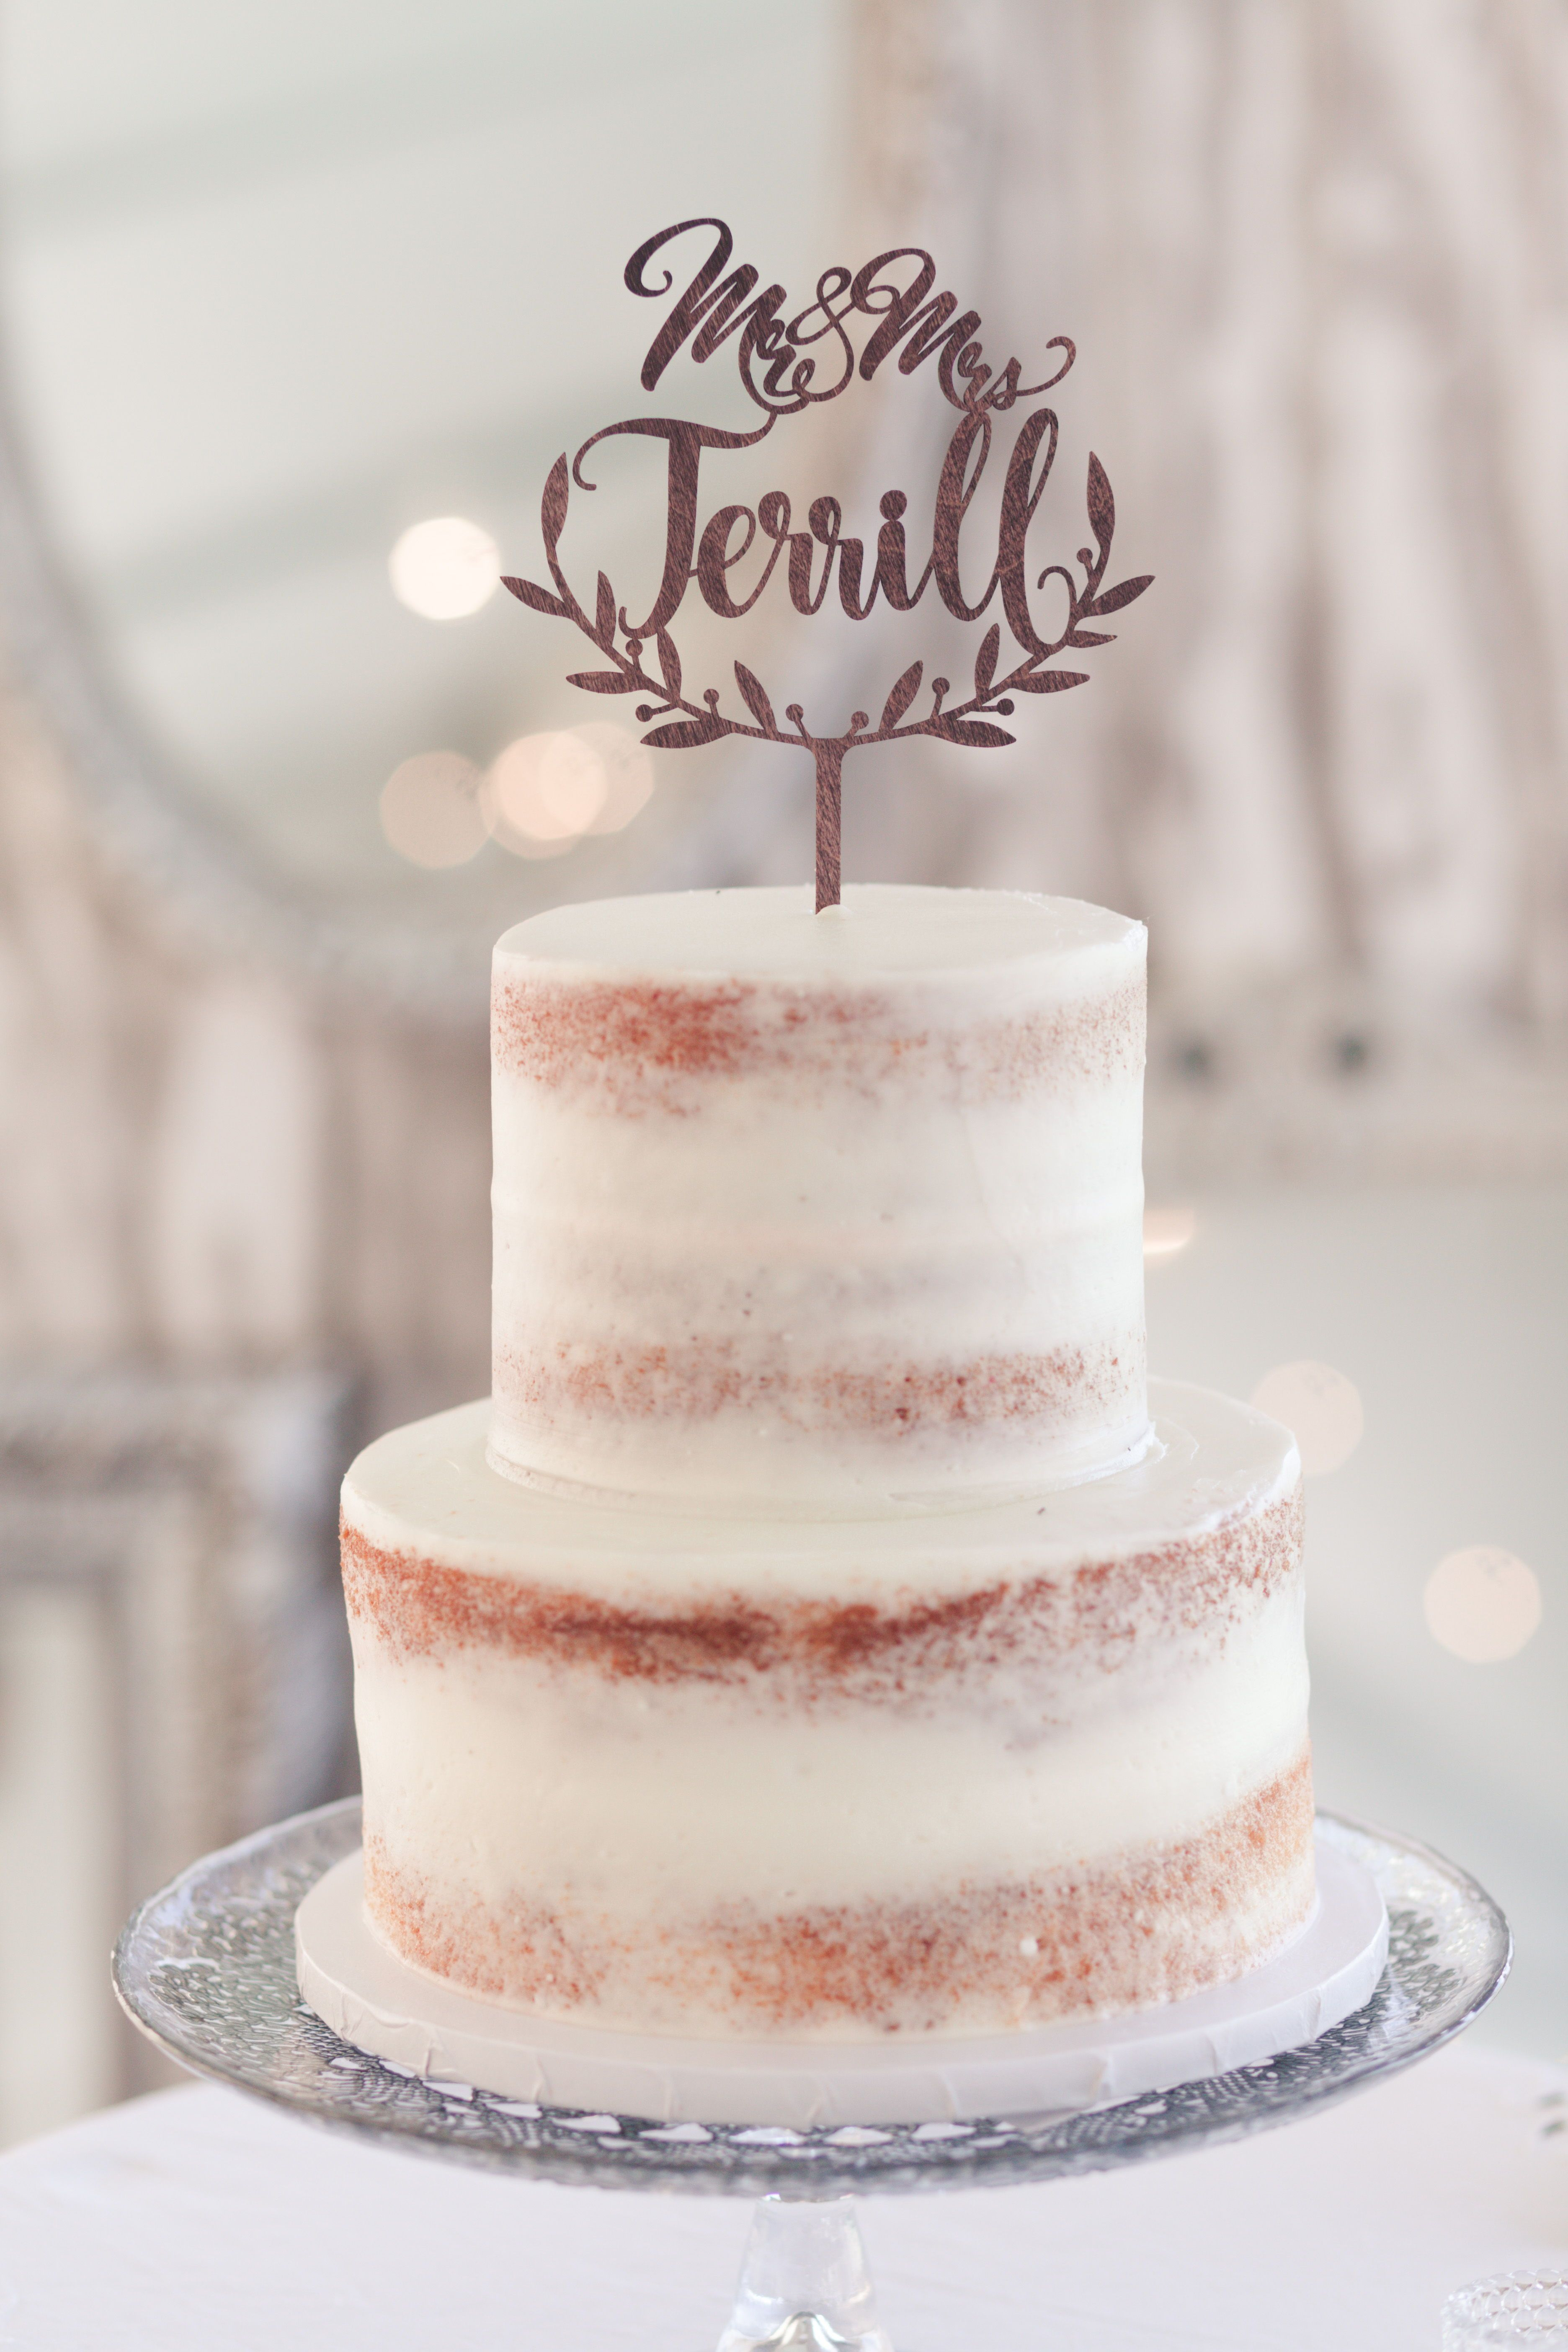 Crumb coated wedding cake rustic wedding cake for a classic country